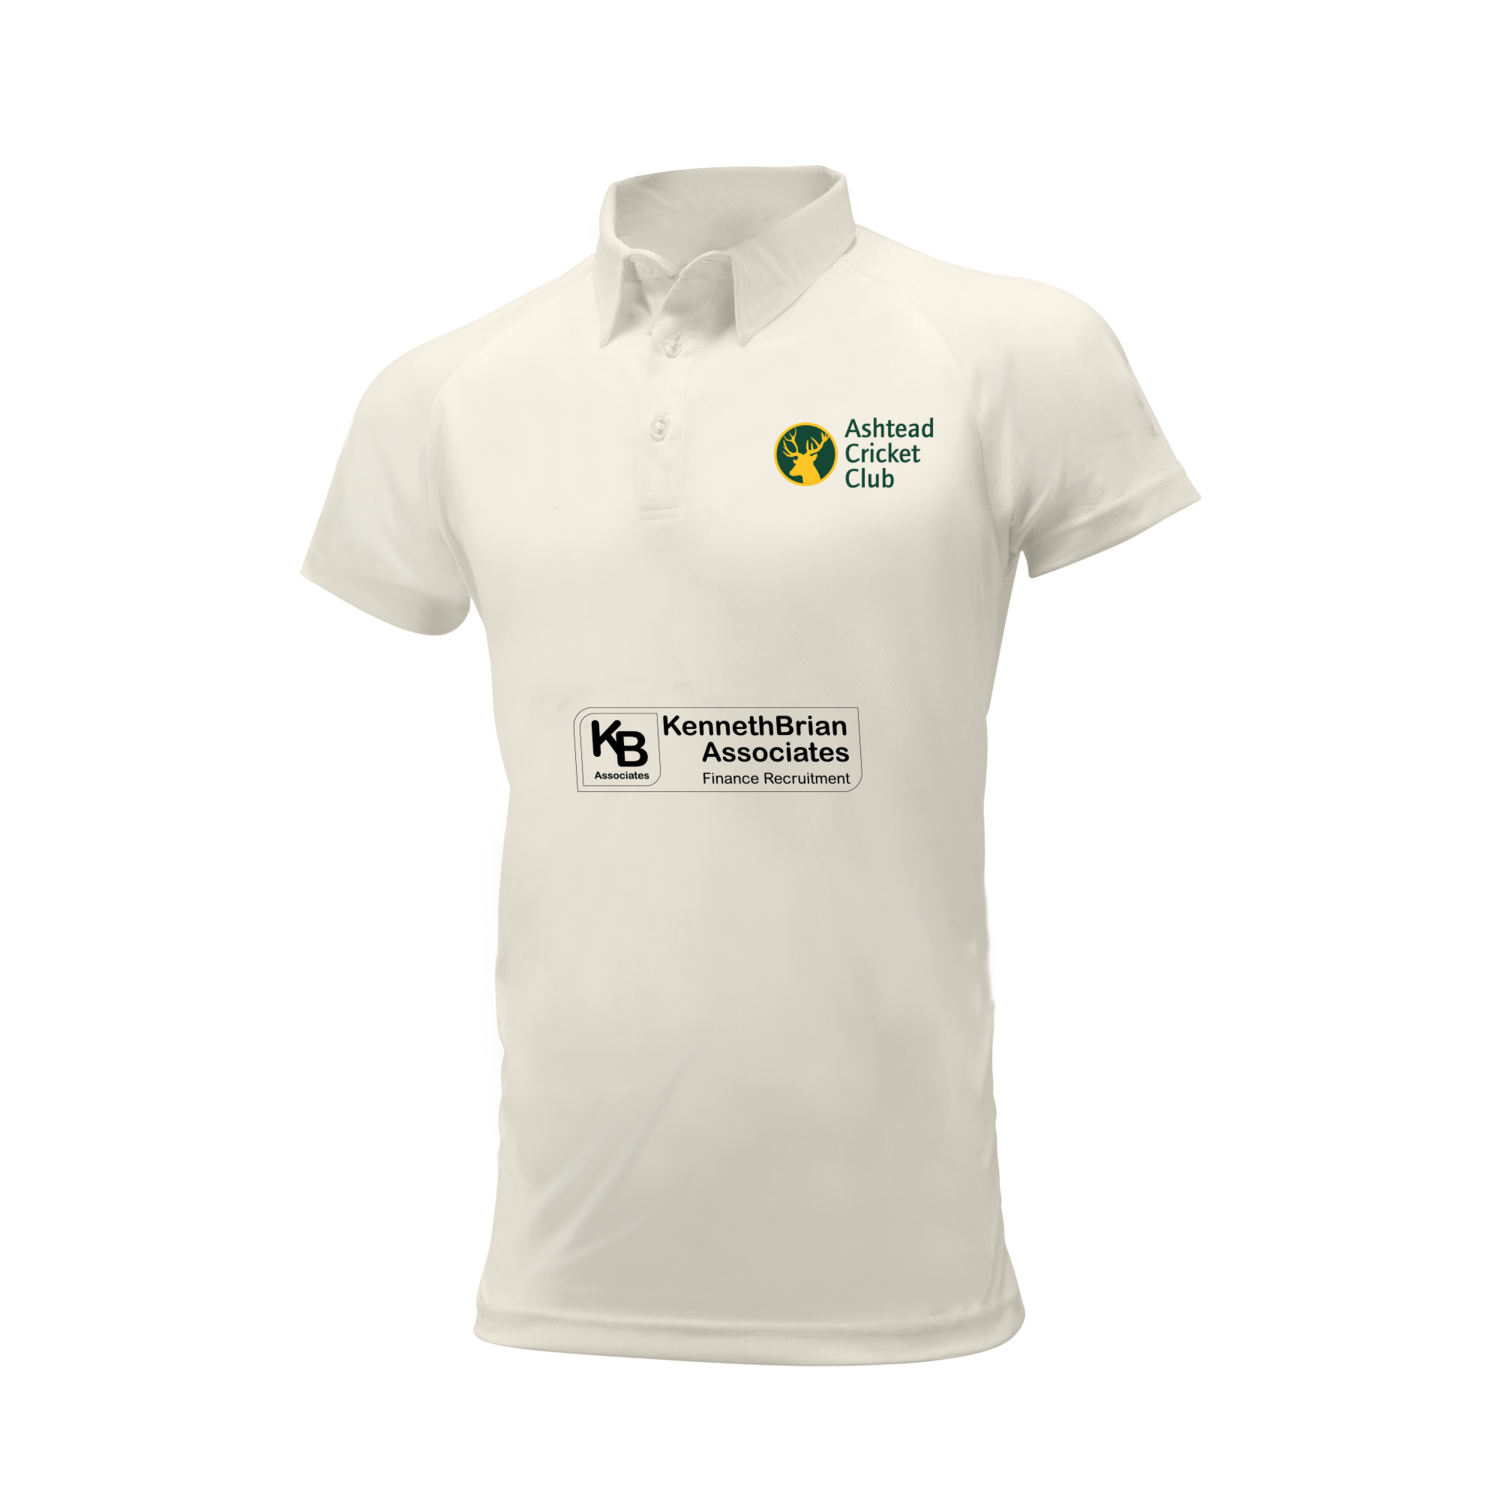 Ashtead Cricket Club embroidered short sleeve white shirt